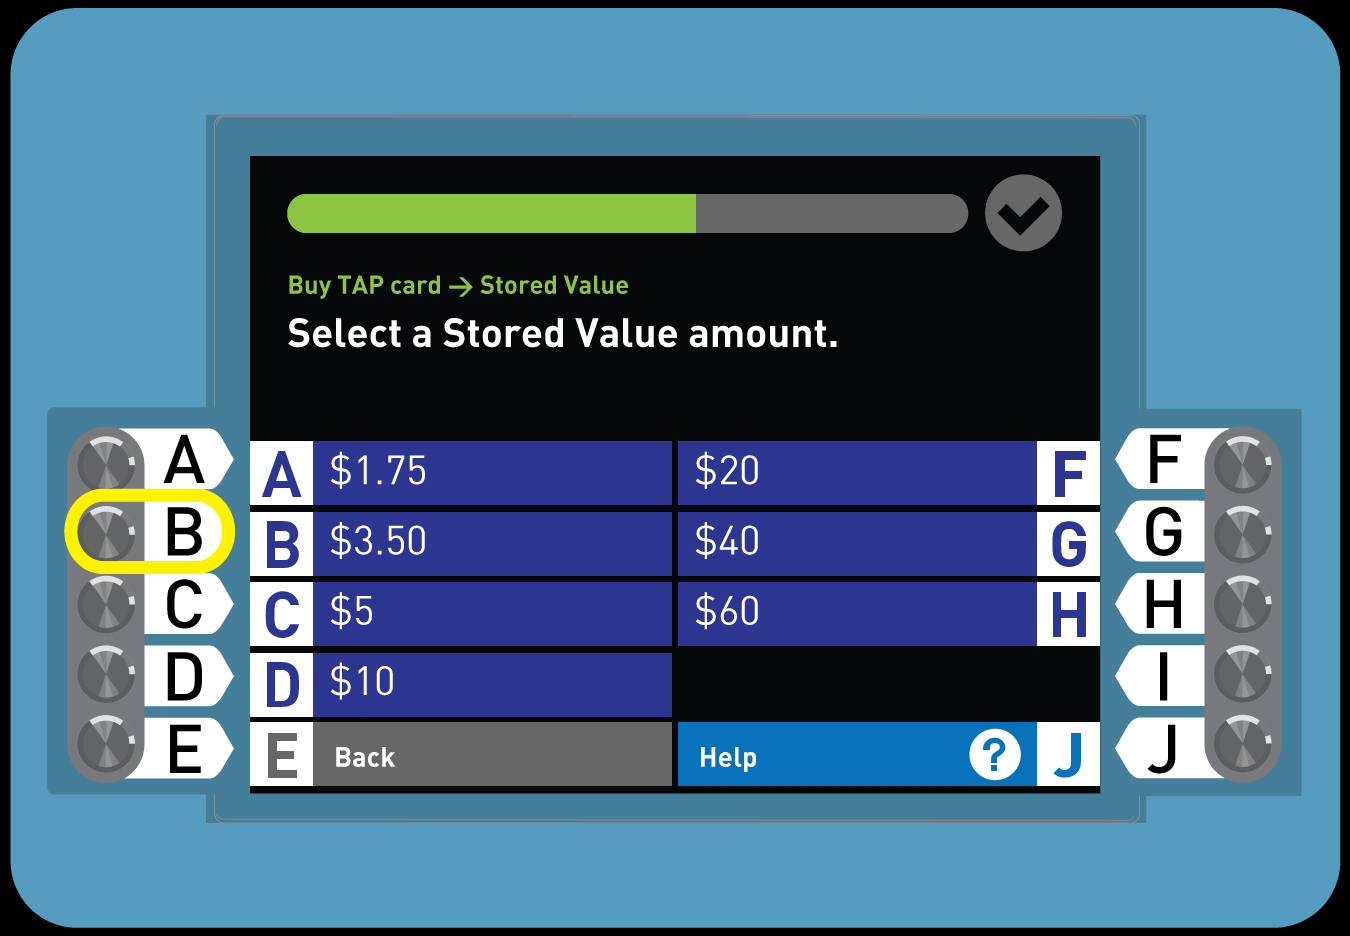 <p>4. Buy a Regular TAP card with Stored Value</p>